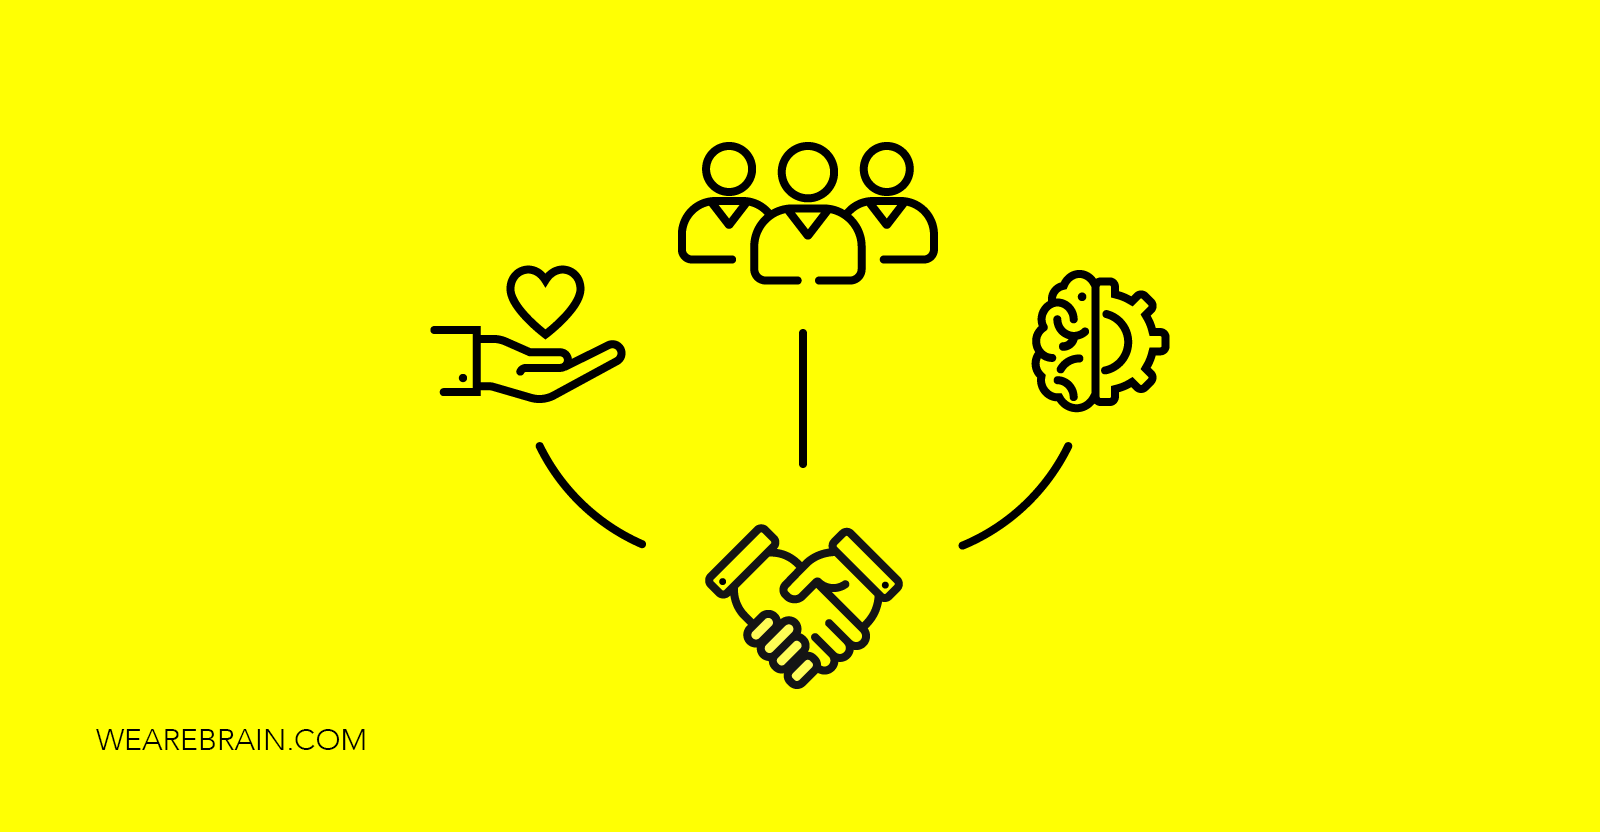 icons representing trust and teamwork